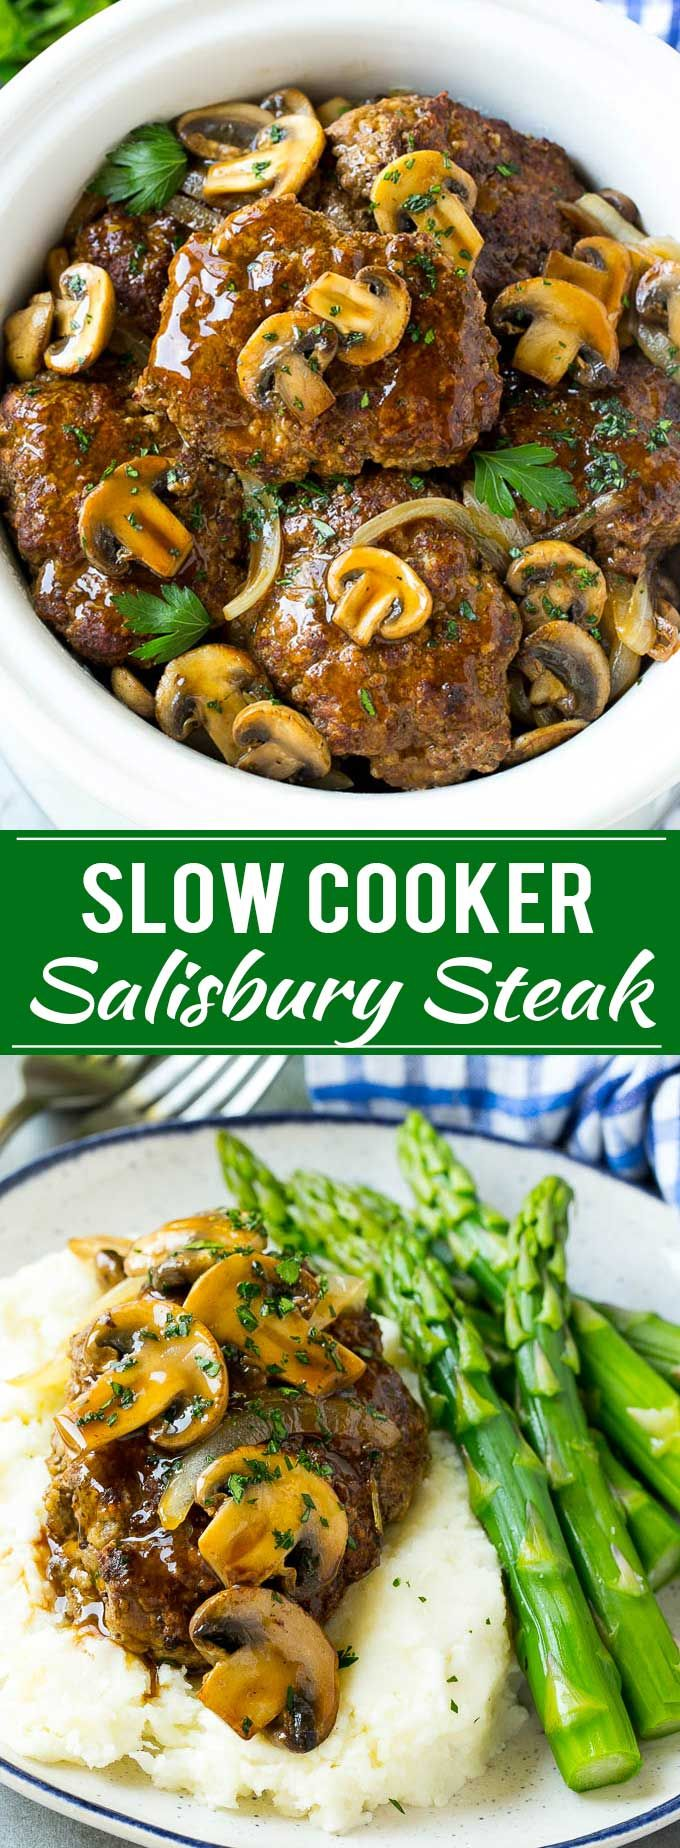 Slow Cooker Salisbury Steak Recipe | Homemade Salisbury Steak | Salisbury Steak from Scratch #ad @McCormickSpice